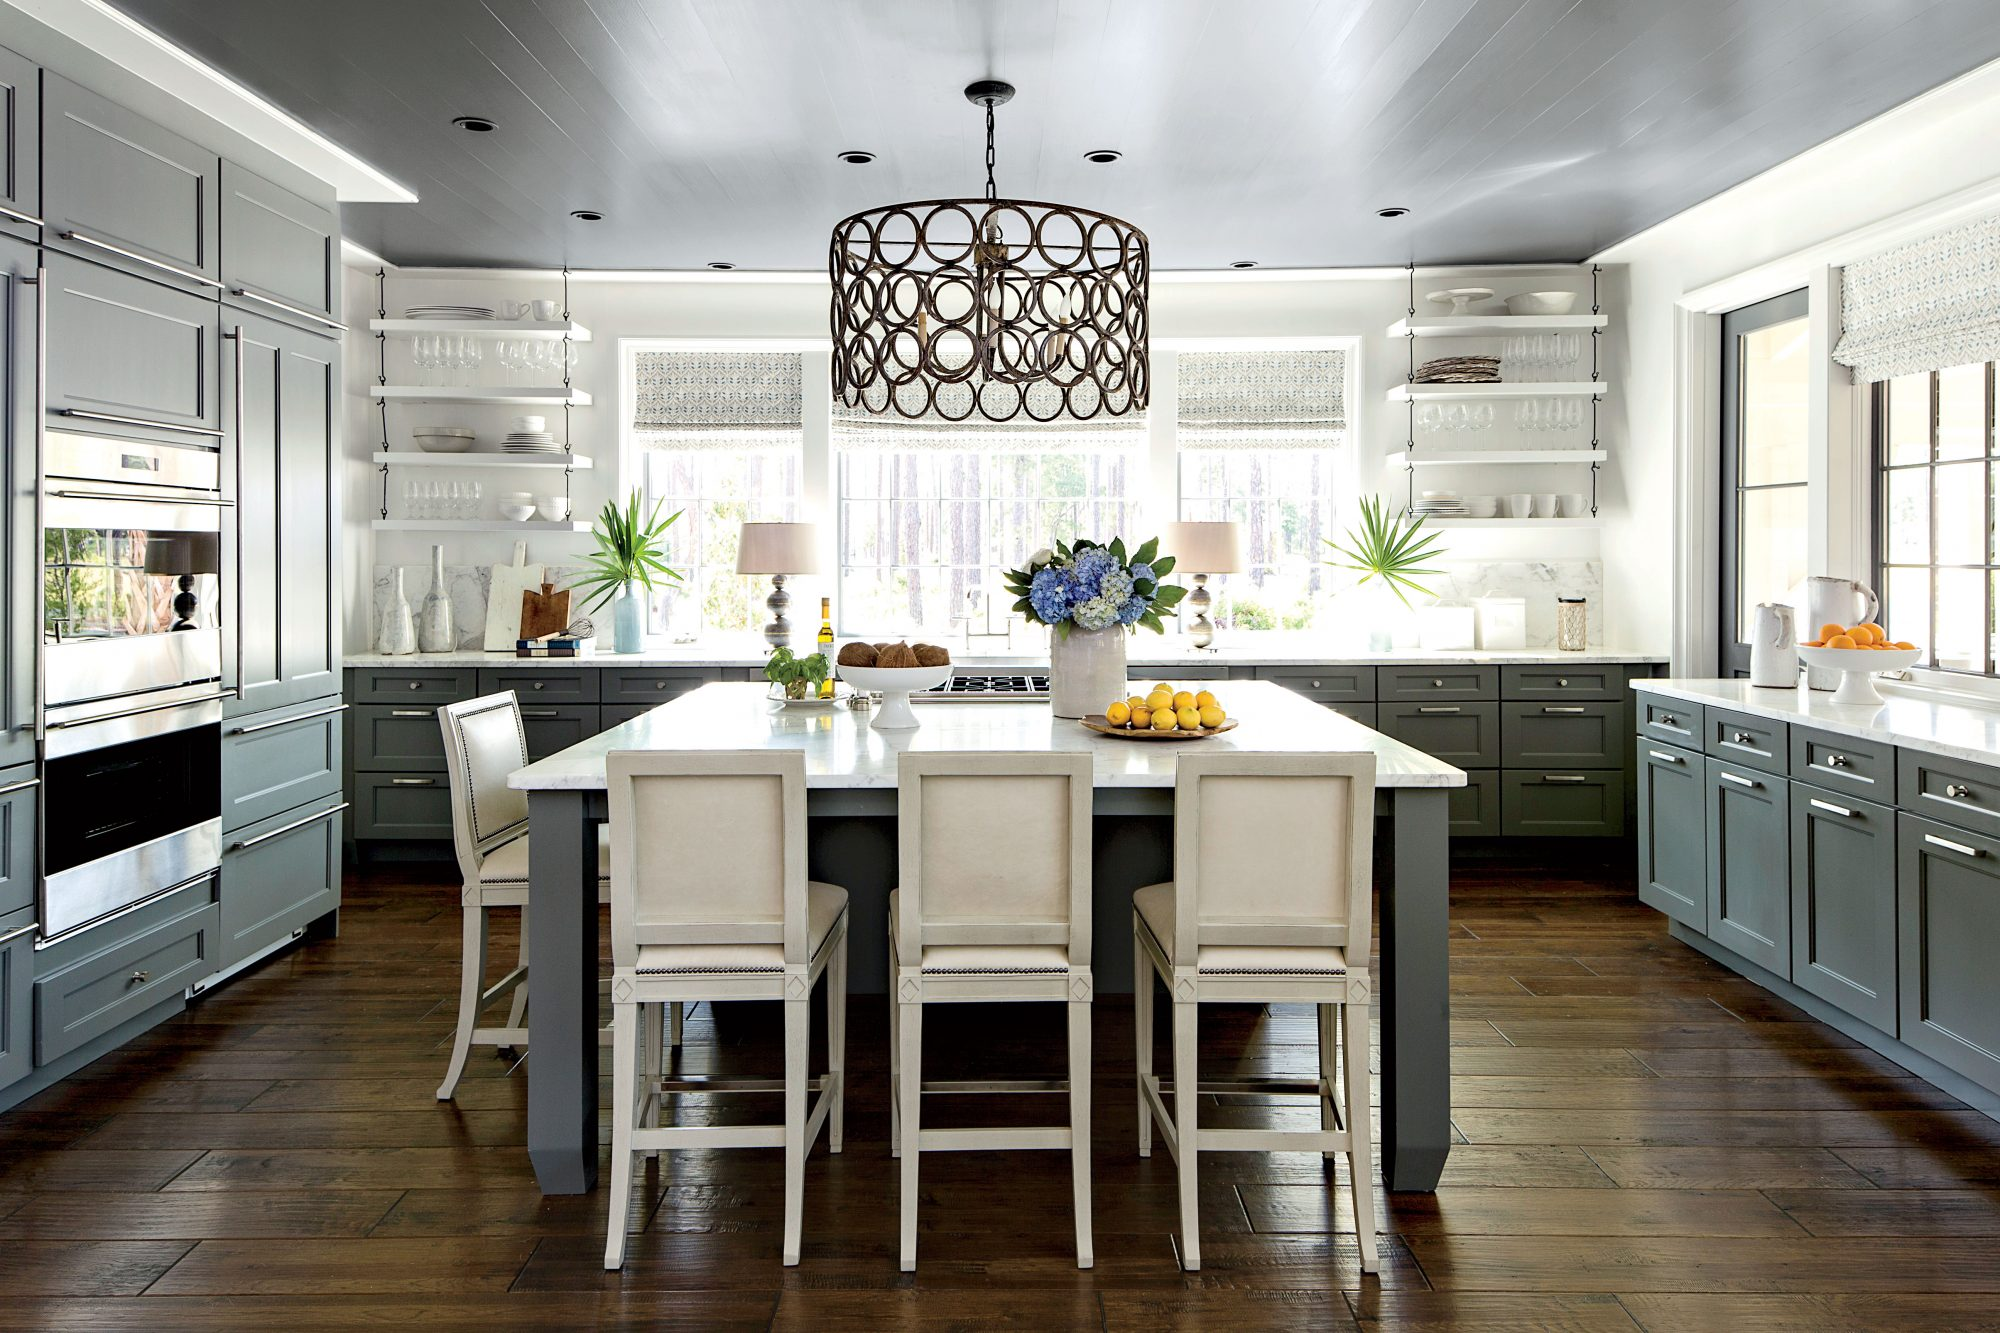 Palmetto Bluff Kitchen Video Tour - Southern Living